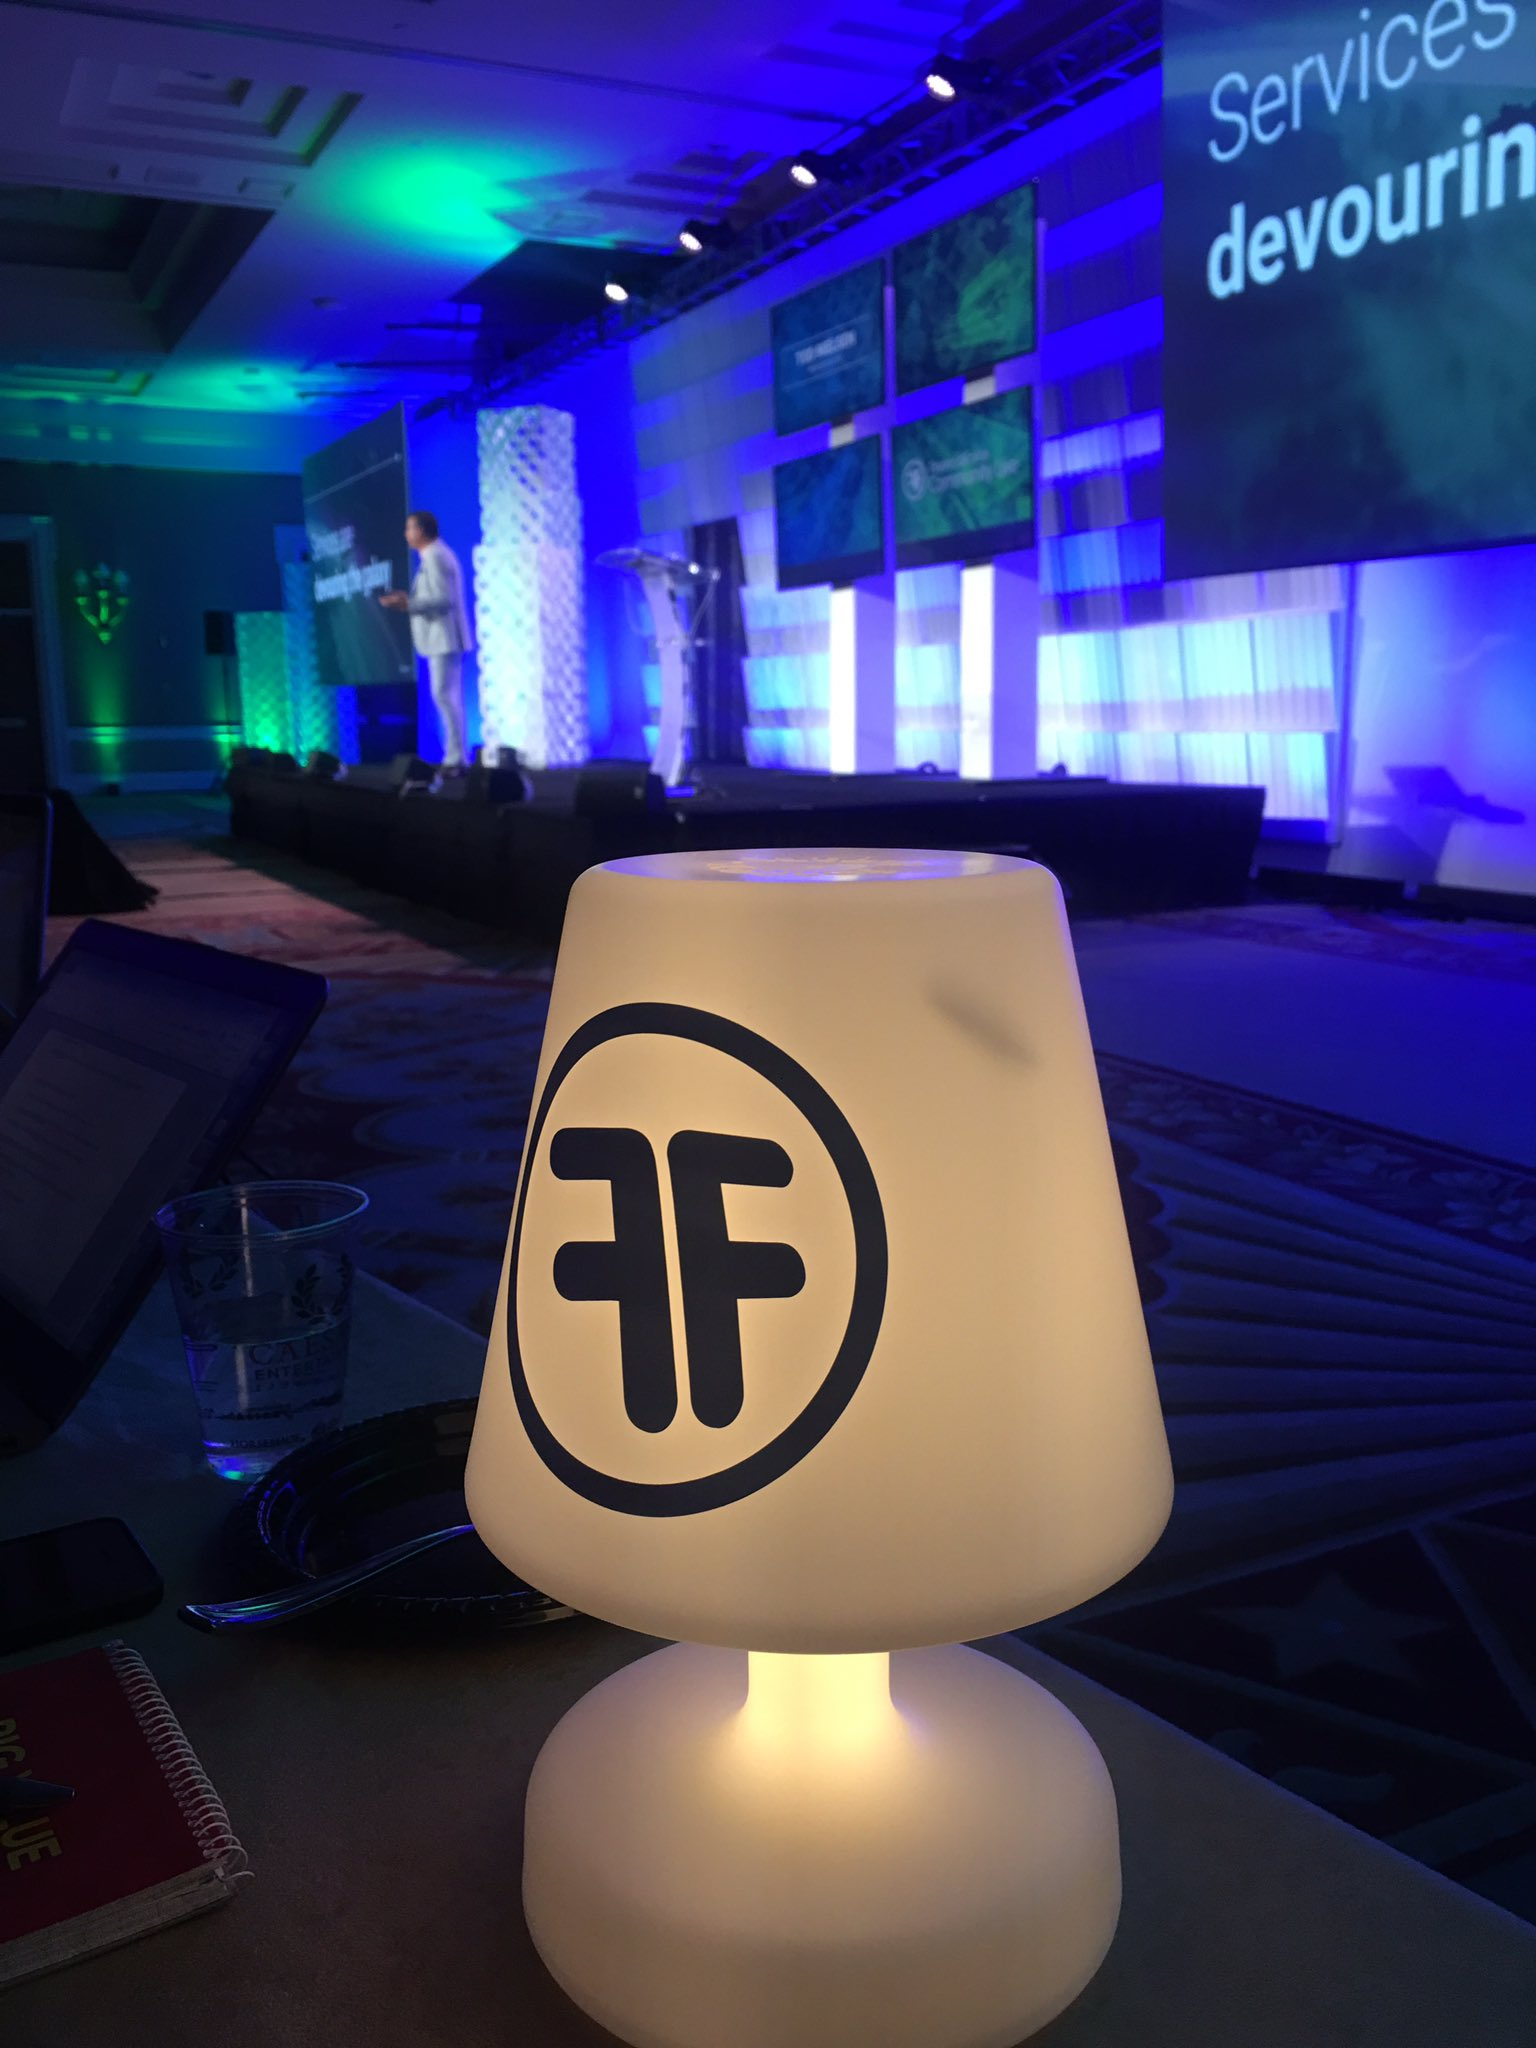 Loving the @FinancialForce lamps in the press/analyst section #FFComm17 https://t.co/a9O51zXFZp